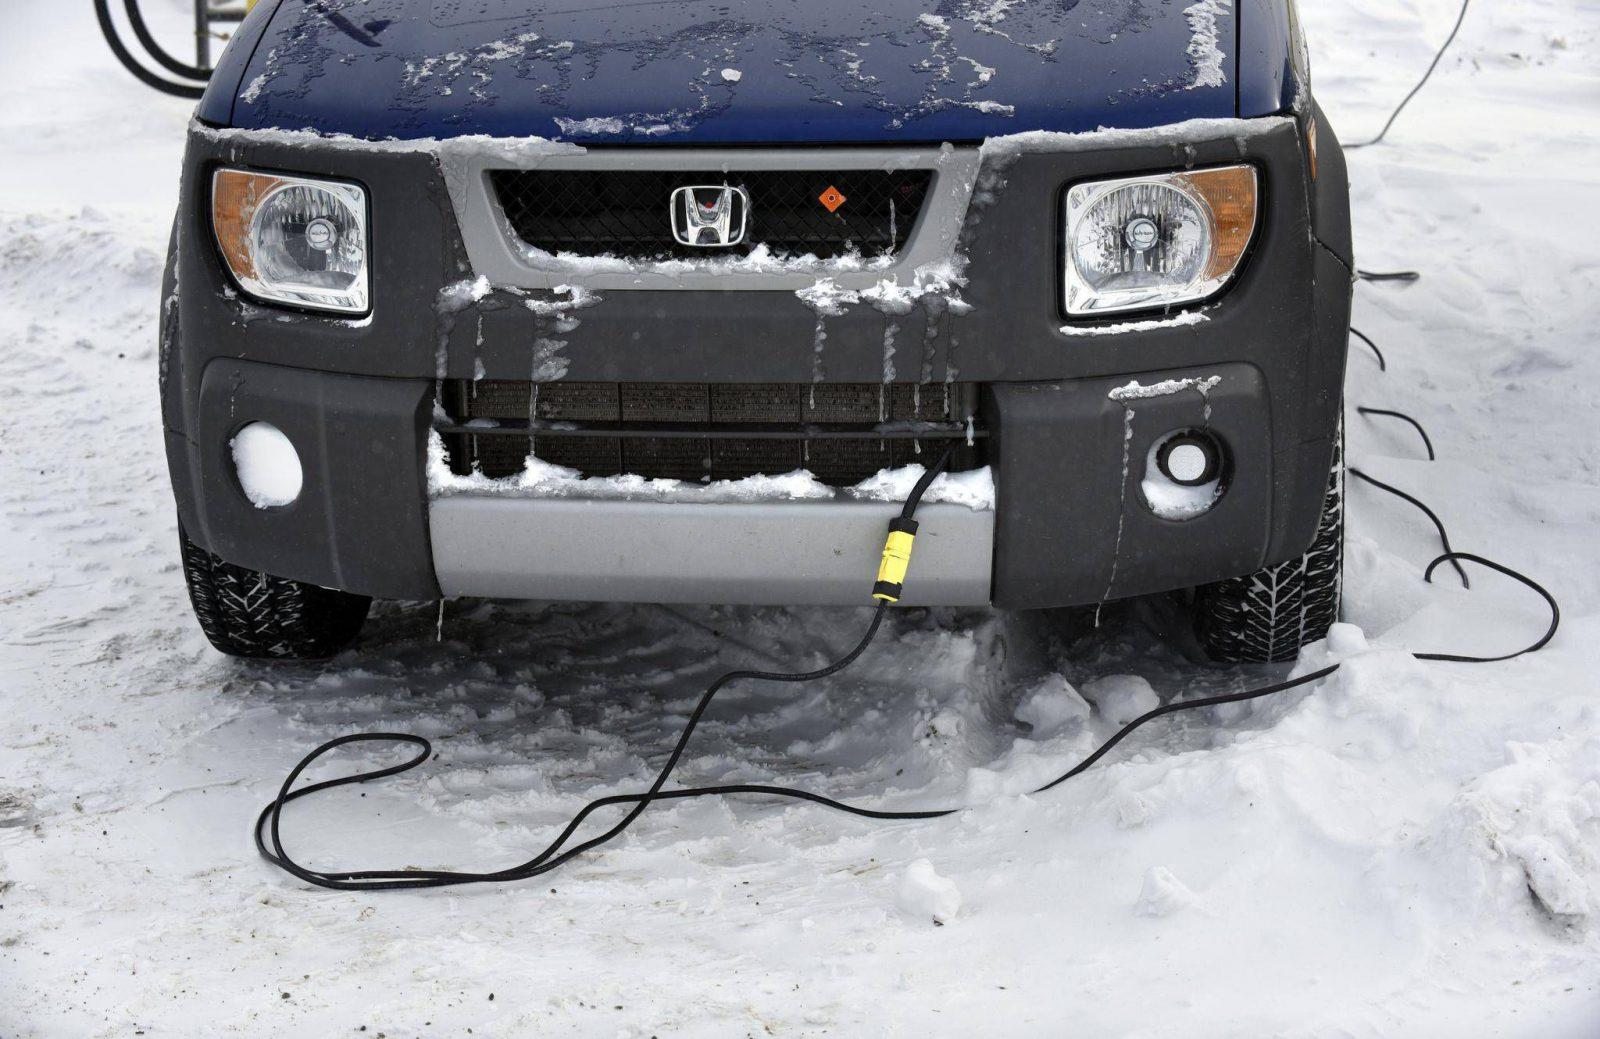 Top 5 Popular Causes Of Car Engine Vibration From Japan Automechanic Lights Electrical Connections Shaking In Cold Weather Is Very Common